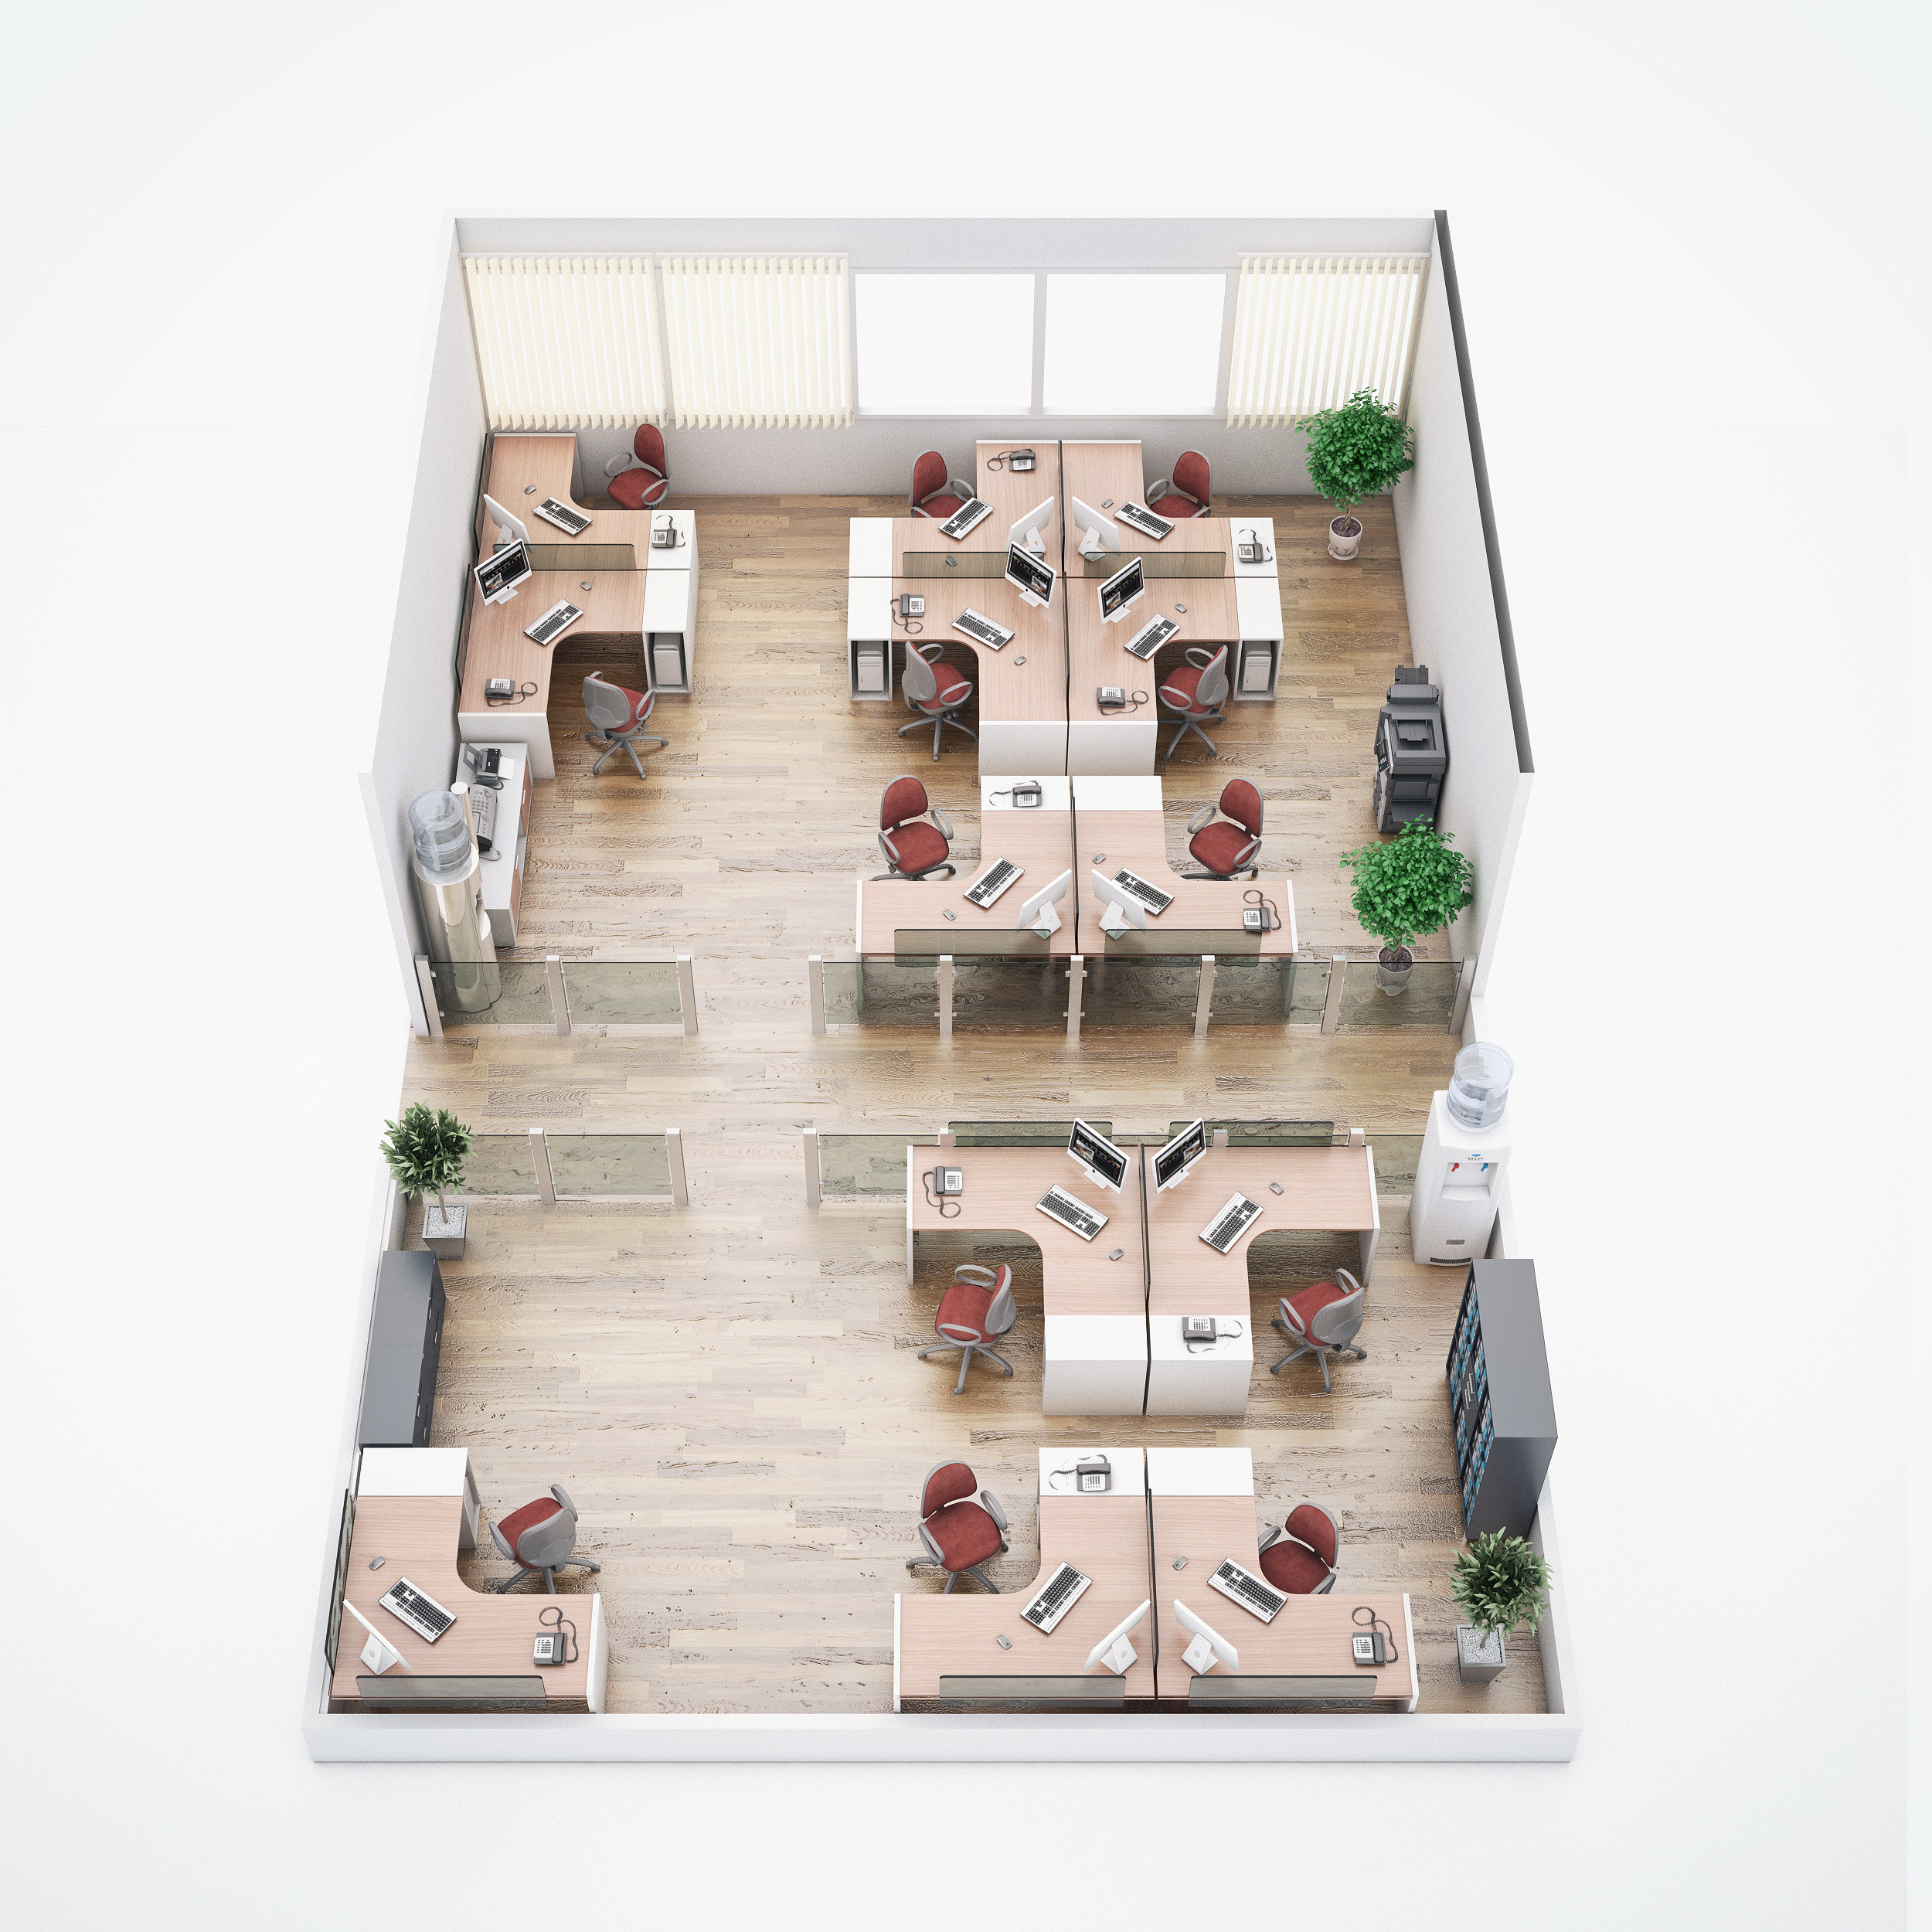 office space planners architectural as architects and planners our job is to create transform spaces tell clients story promote their vision with innovative design solutions space planning what it why important wdm architects